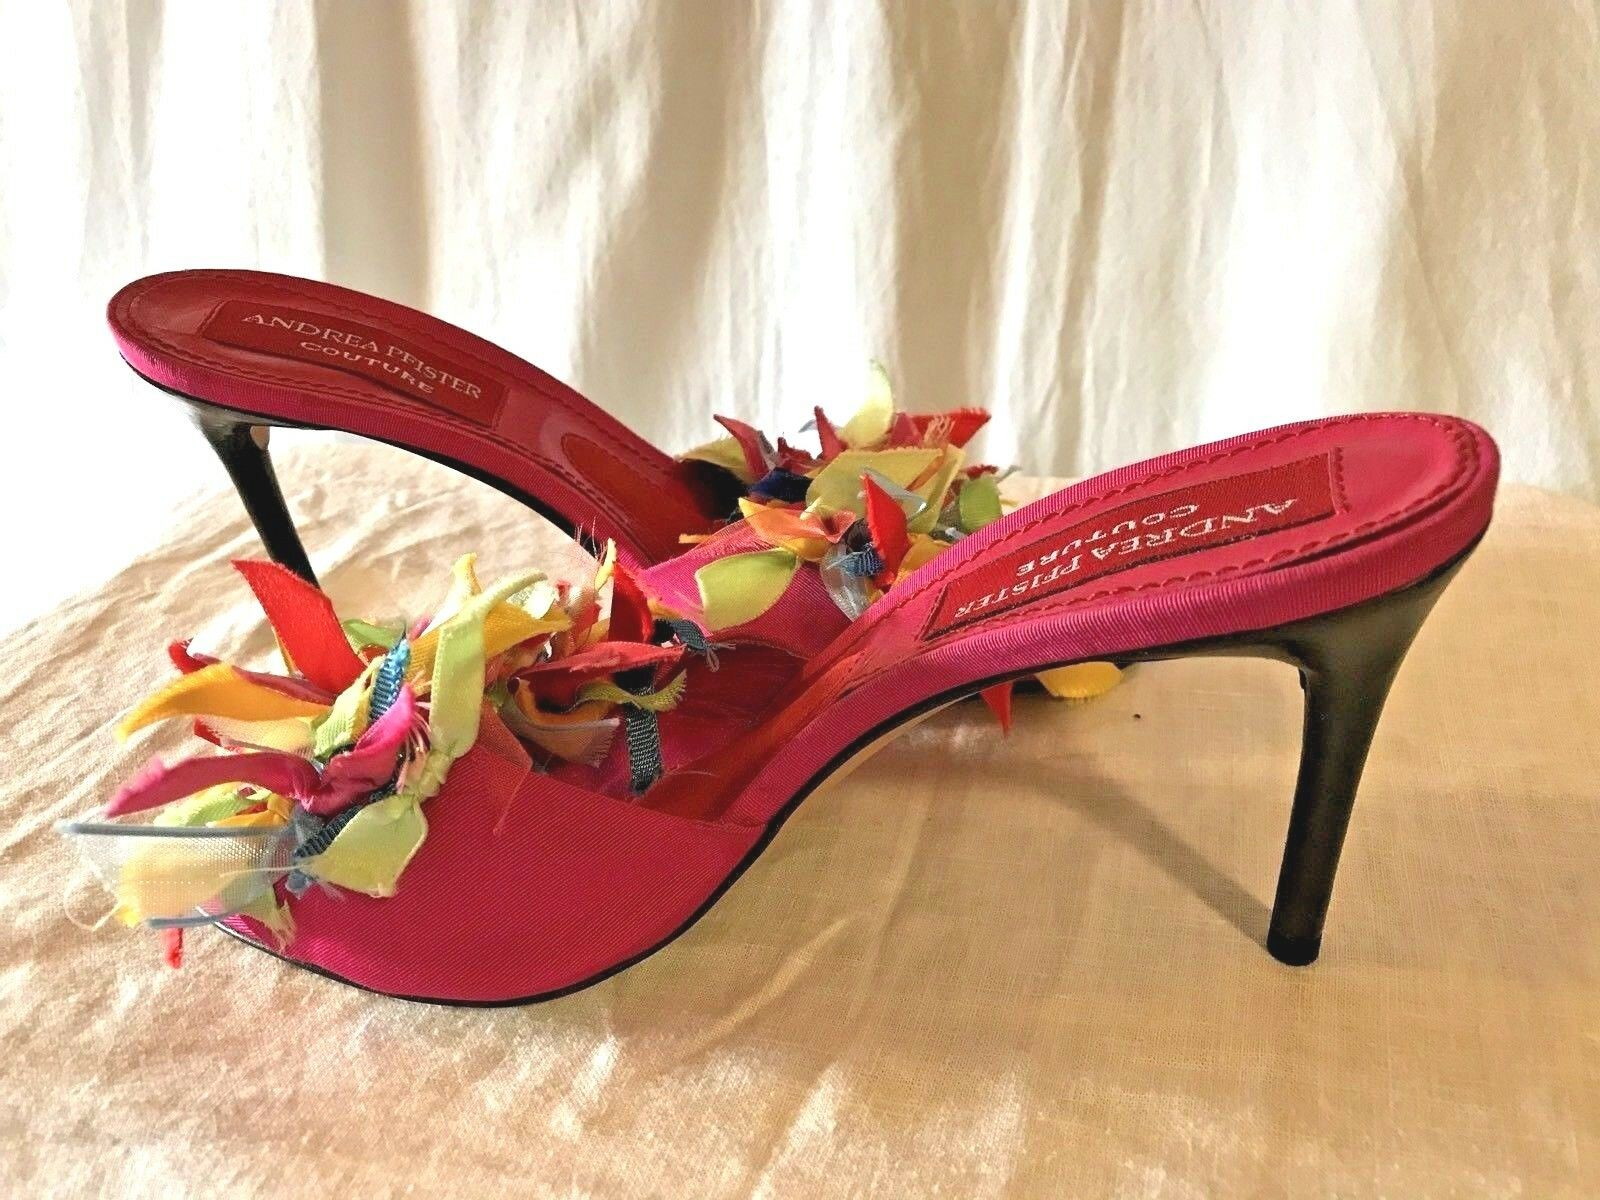 ANDREA PFISTER COUTURE Ribbon High Heel Sandals shoes size 38 made in